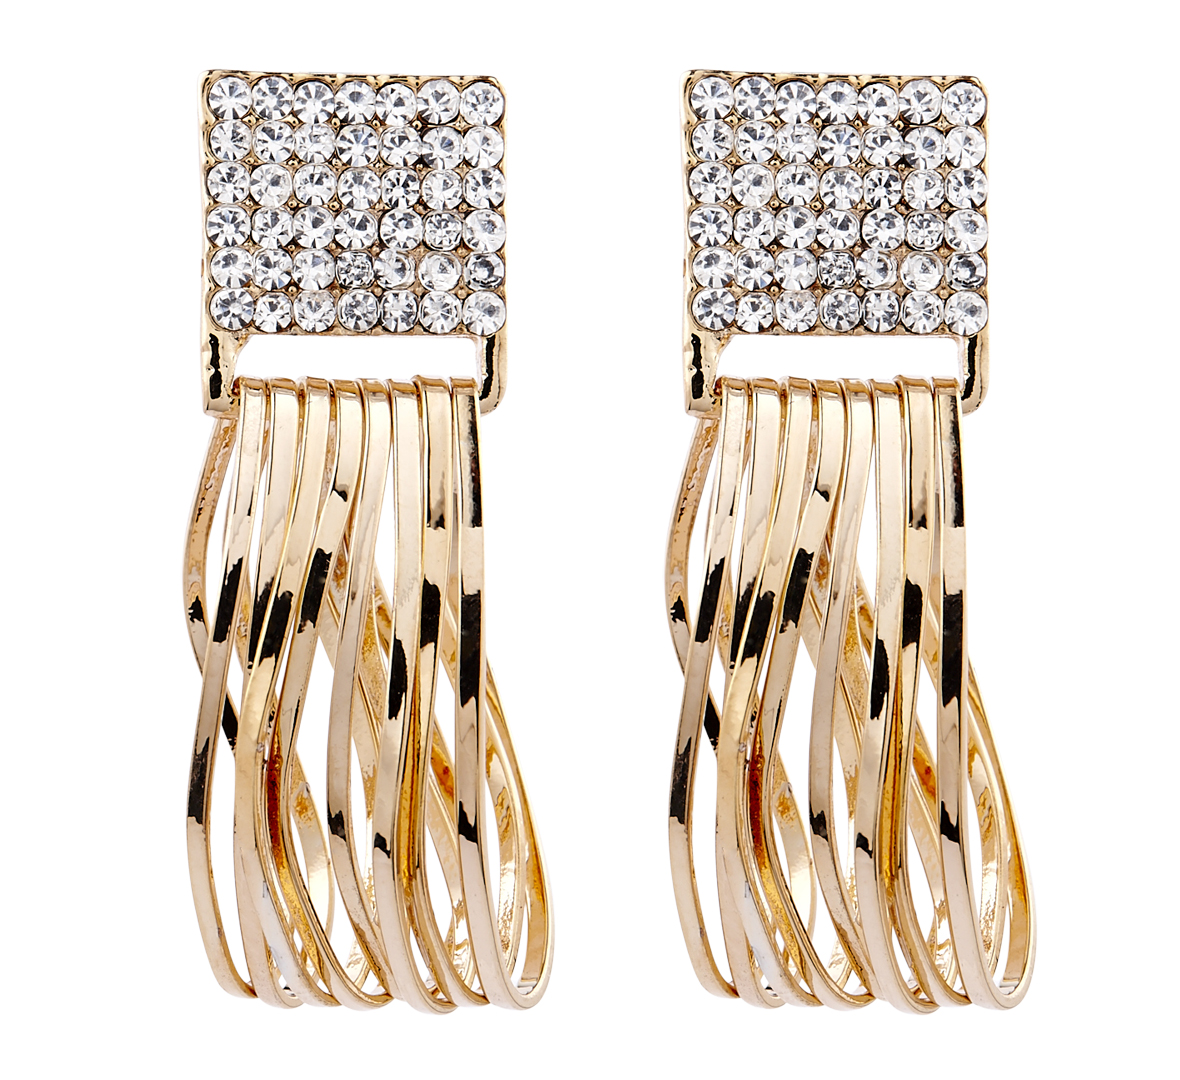 Clip On Earrings - Bria C - gold earring with crystals & drop hoops